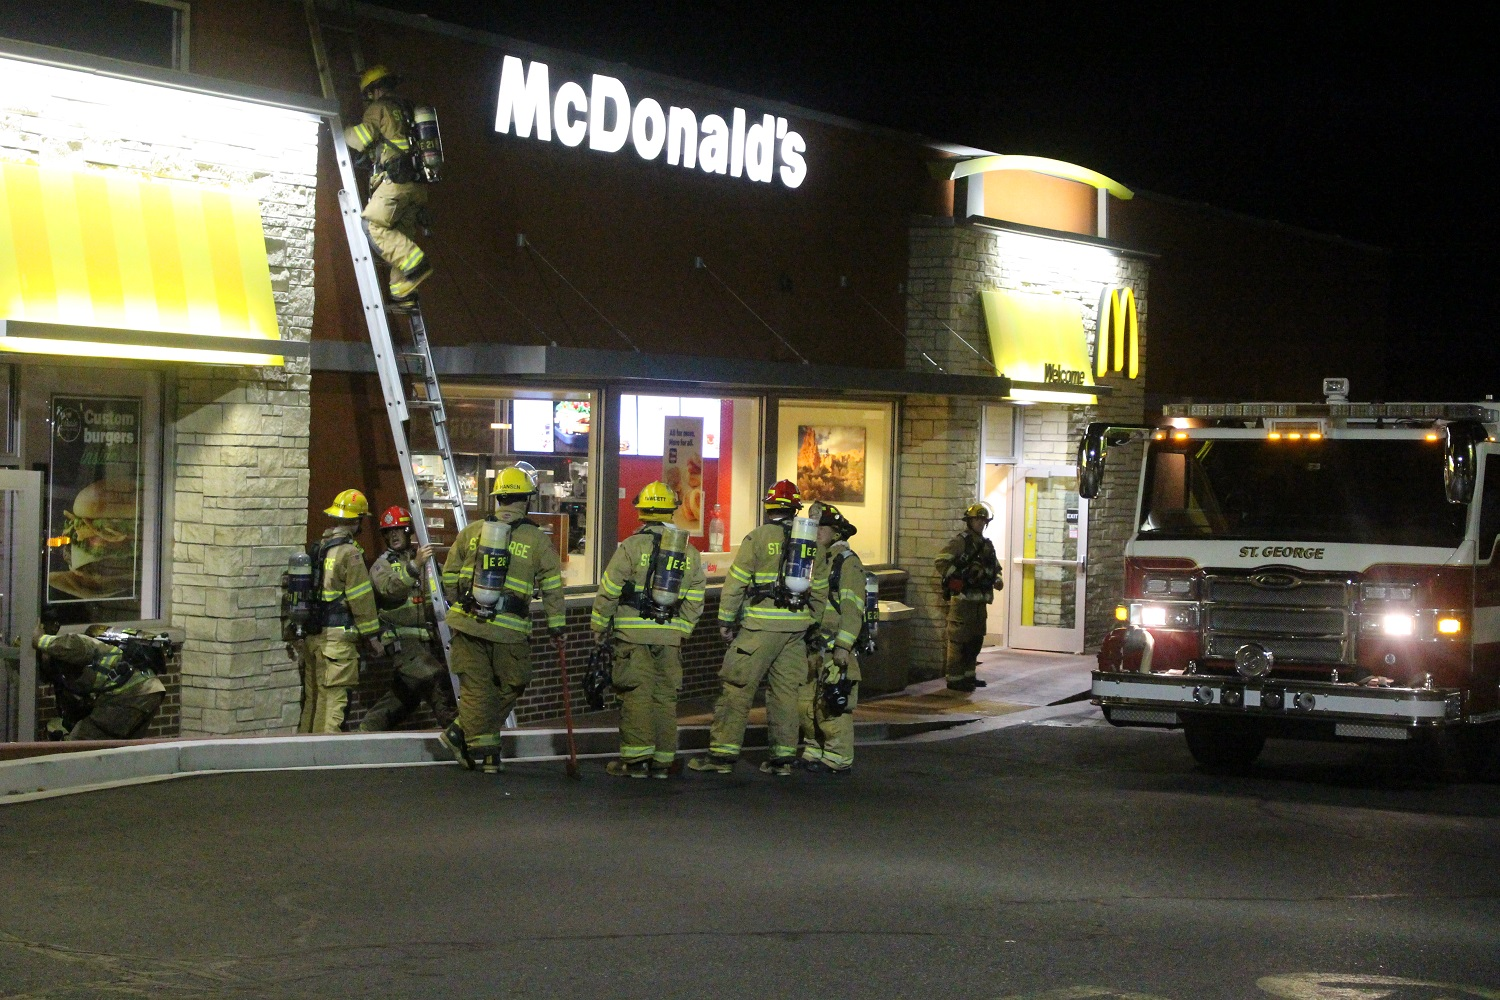 Firefighters respond to a reported structure fire at McDonald's after an employee calls 911 reporting smoke in the building Saturday, St. George, Utah, Oct. 1, 2016 | Photo by Cody Blowers, St. George News